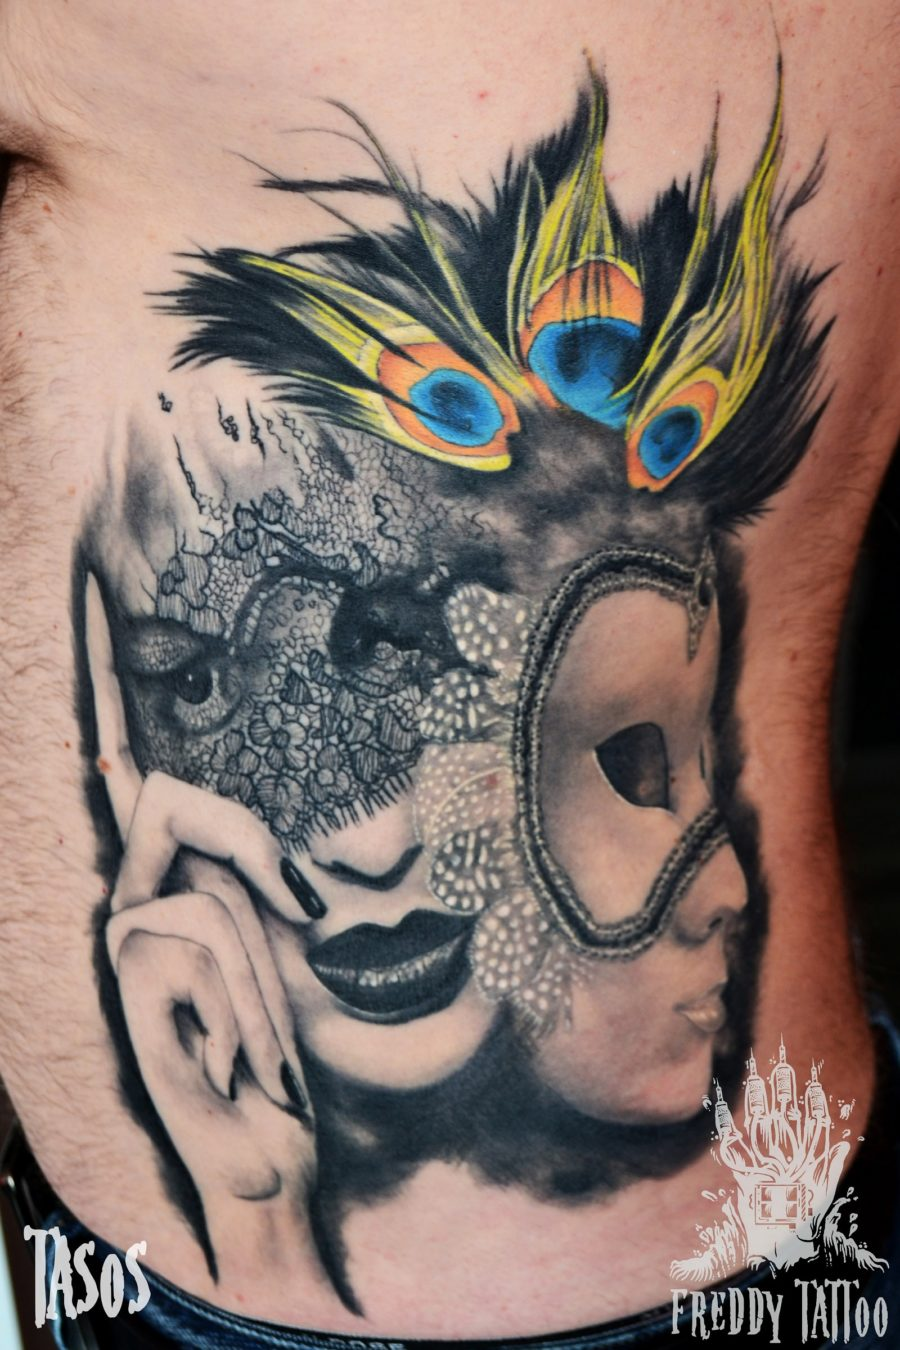 Freddy Tattoo Studio 10